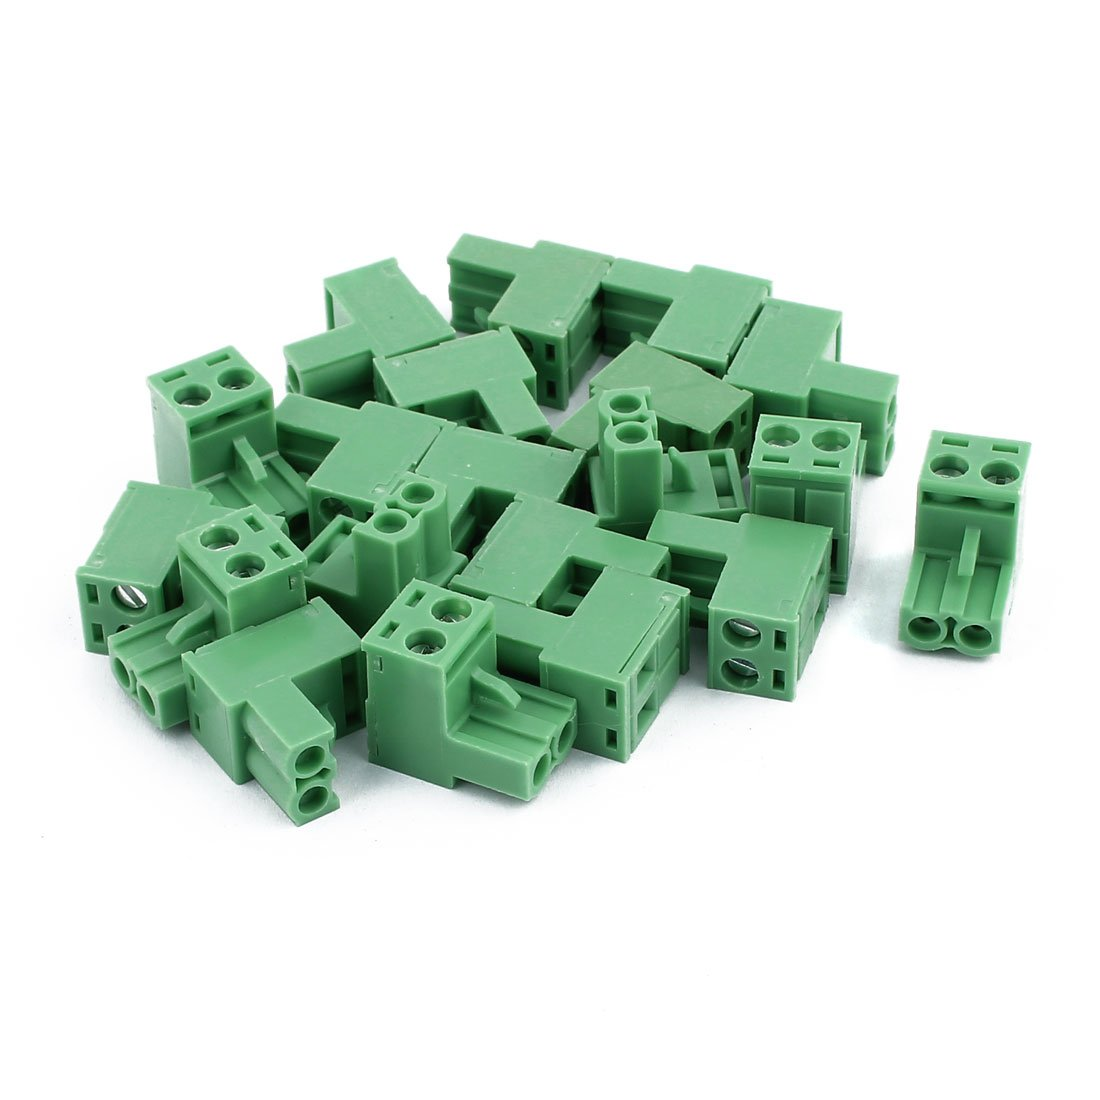 uxcell 20Pcs 300V KF2EDGK 5.08mm Pitch 2-Pin PCB Screw Terminal Block Connector a16122000ux0370